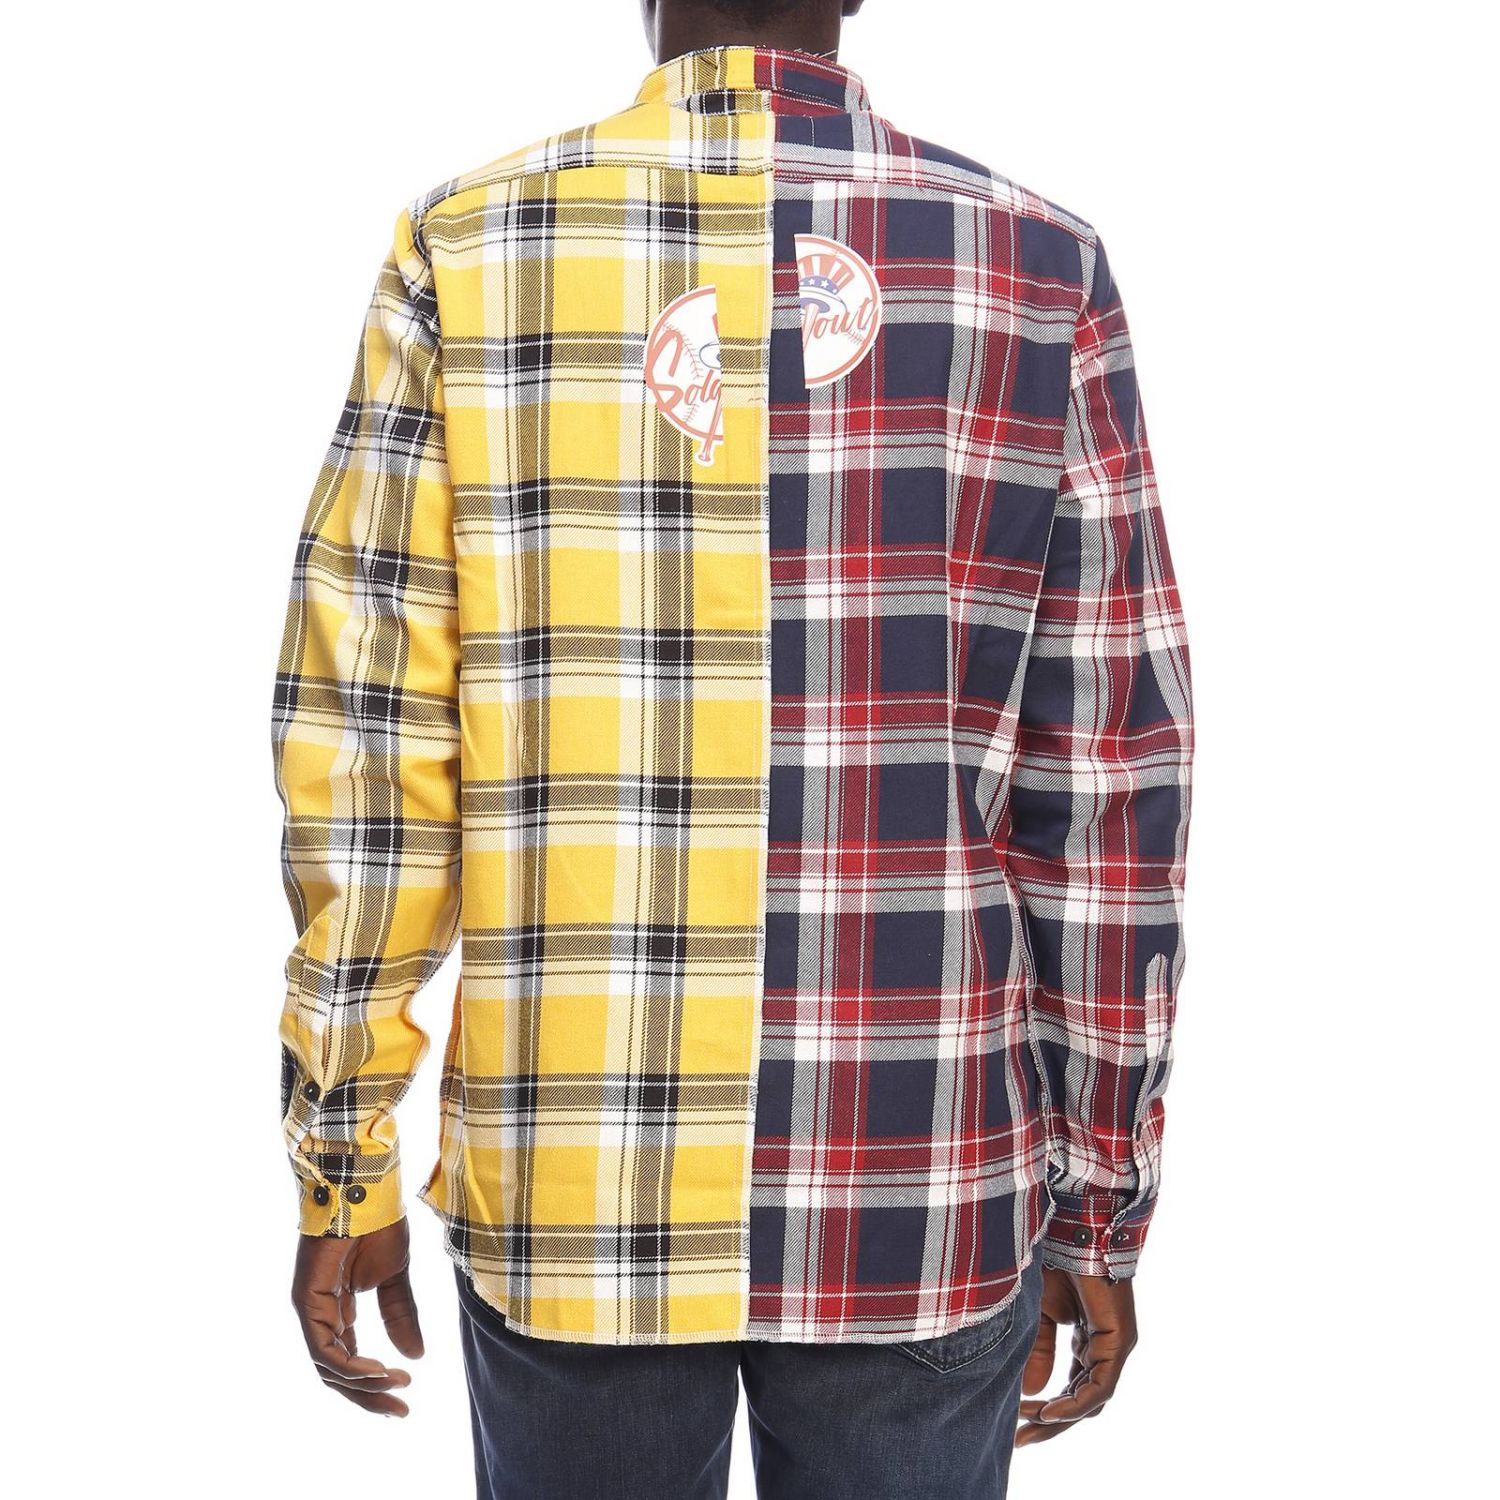 Shirt men Sold Out yellow 3